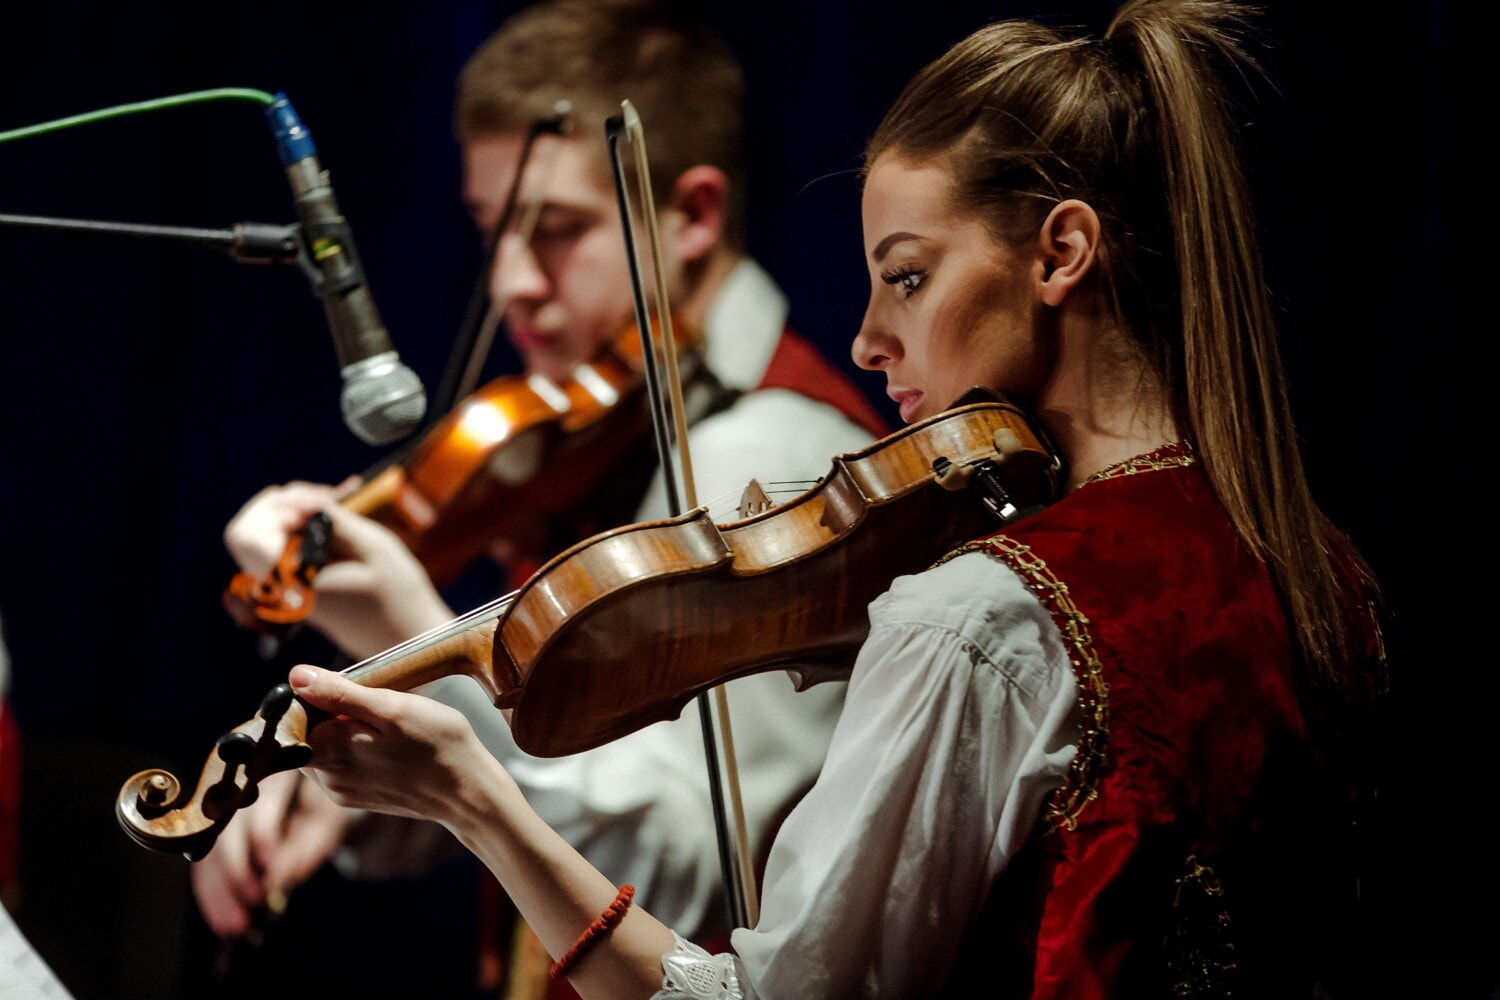 couple, violin, musician, concert, music, performance, instrument, classic, woman, people